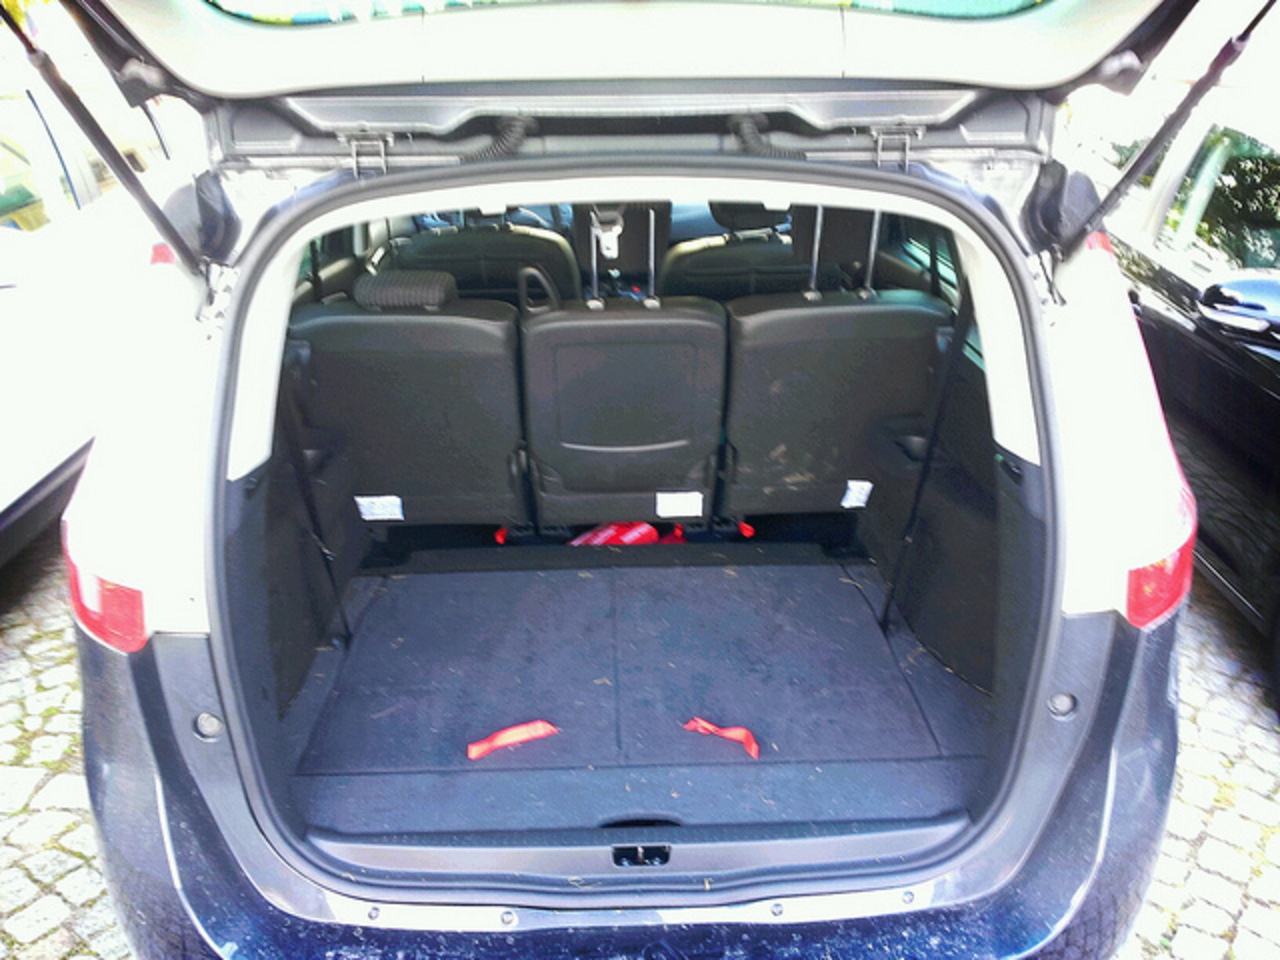 Renault Scenic Trunk | Flickr - Photo Sharing!